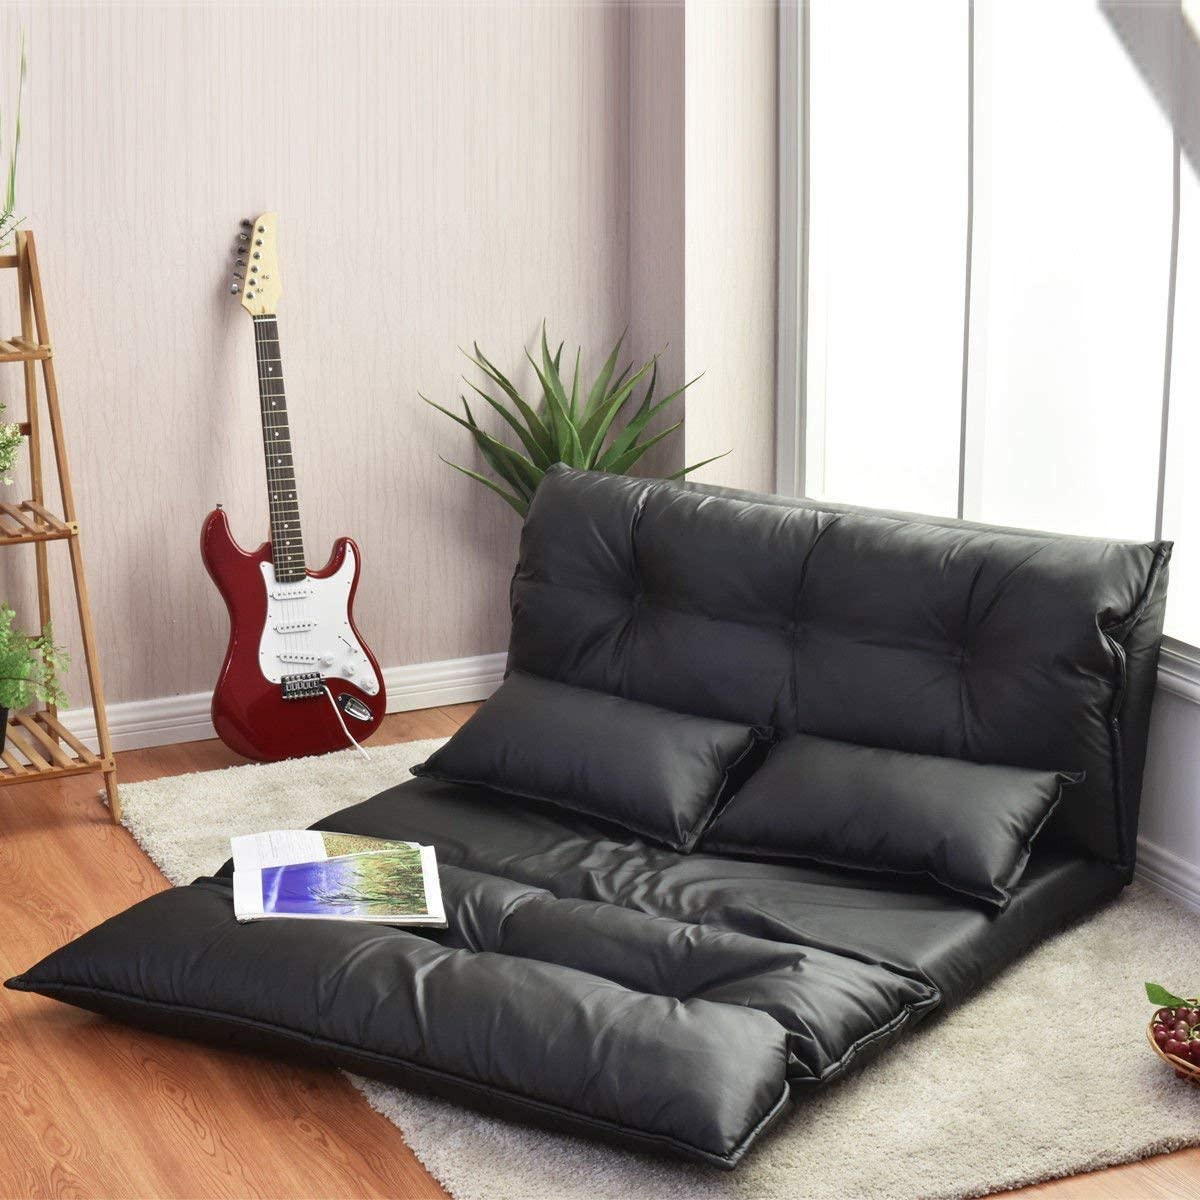 - COSTWAY Double Folding Sofa Bed With 2 Pillows, 5-Position